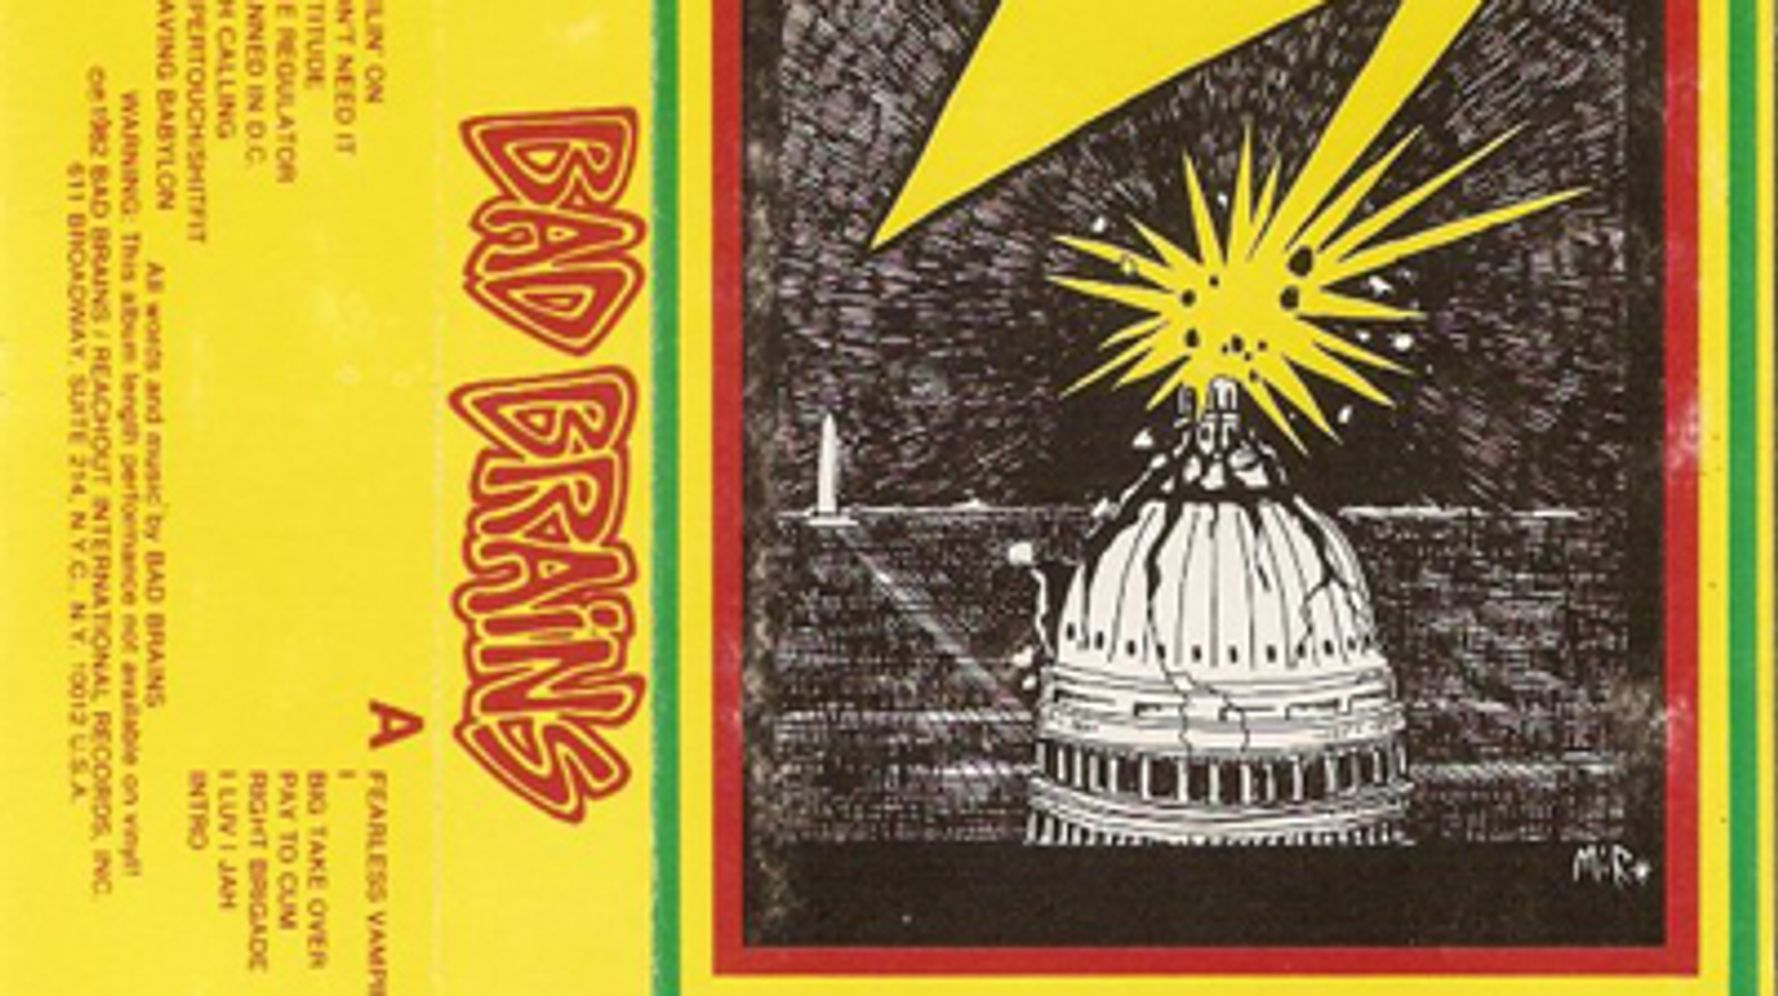 A Conversation with Author Howie Abrams: H R  and Bad Brains | HuffPost